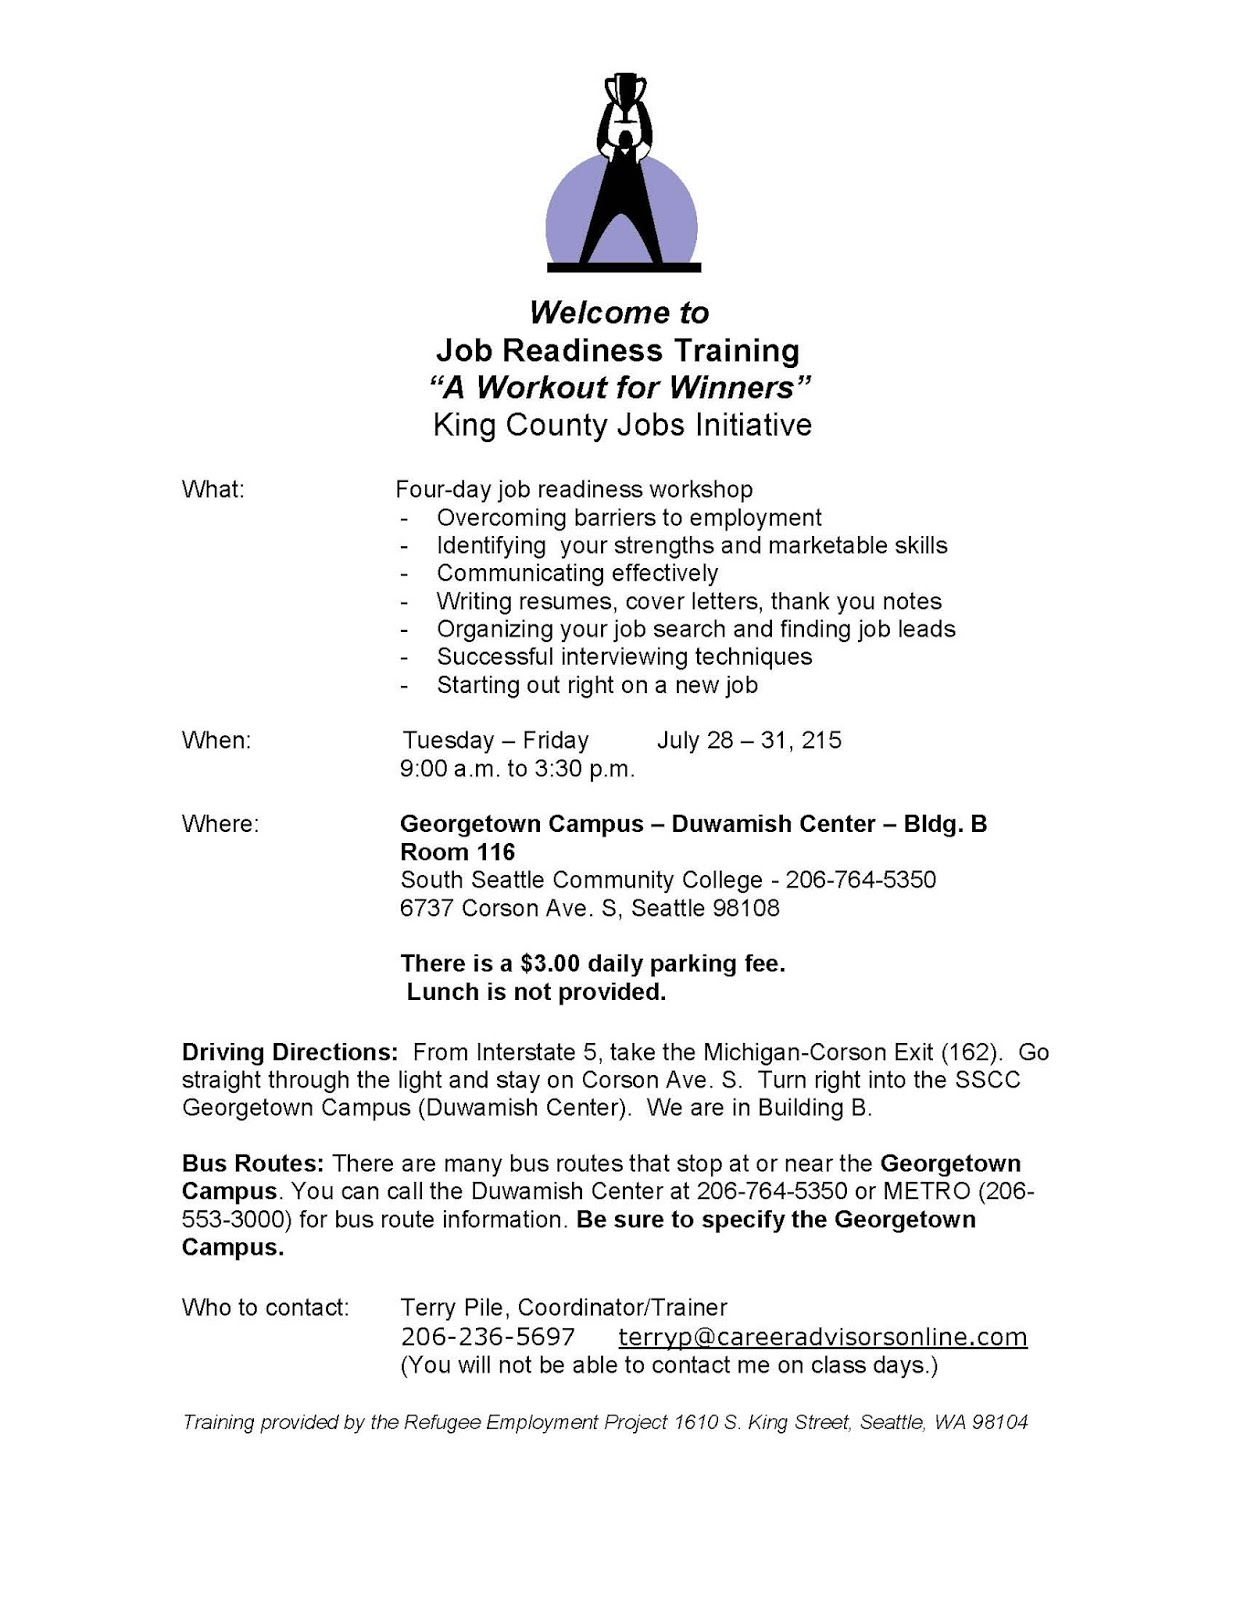 connectup job opportunities 7 21 15 click any image above to view it larger